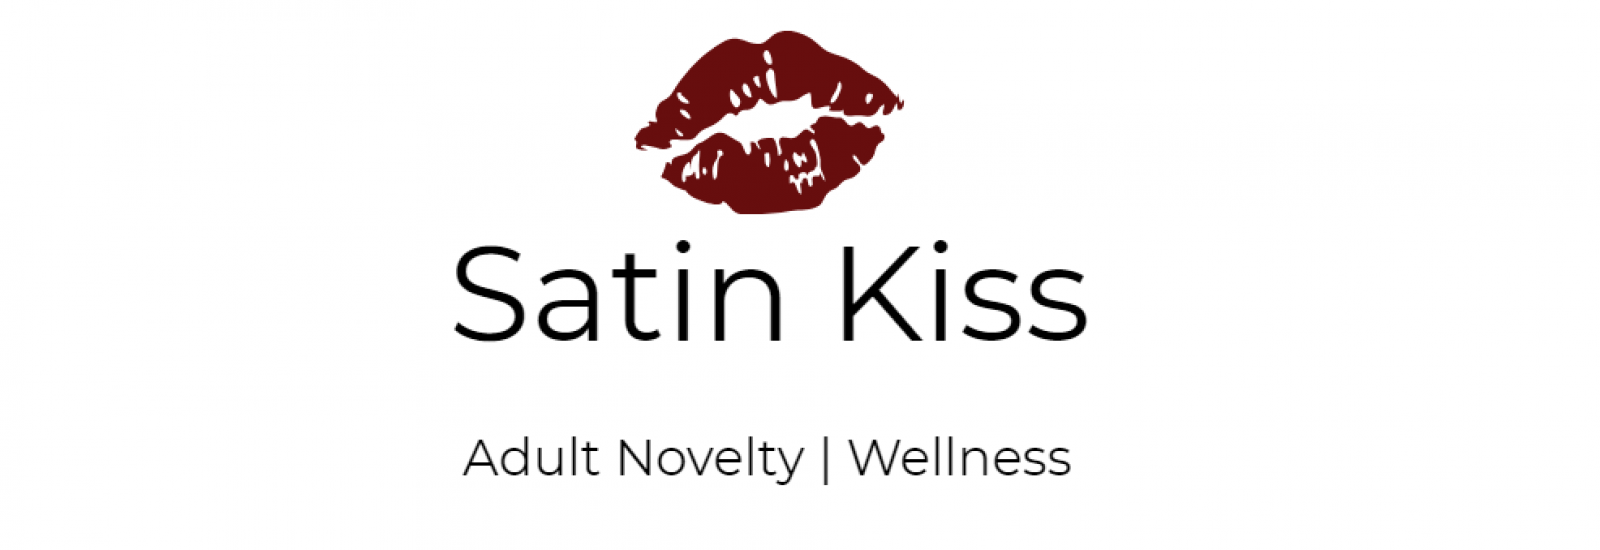 Satin Kiss Logo Banner